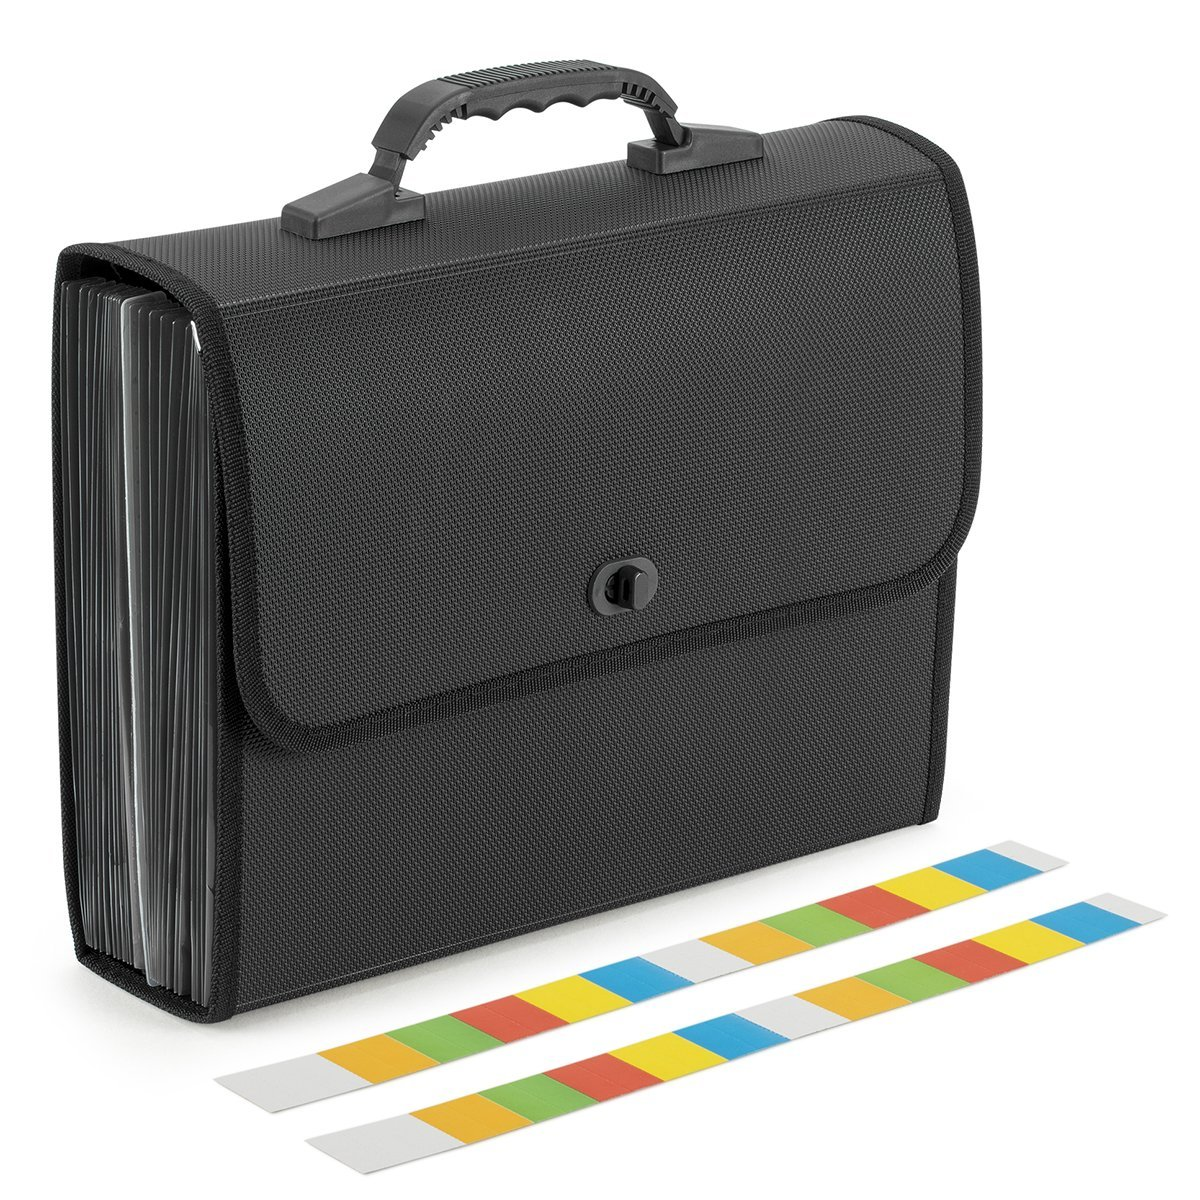 Accordion Folders with Handle - 26 Pocket Expanding Files Folders Accordian File Organizer A4 Size